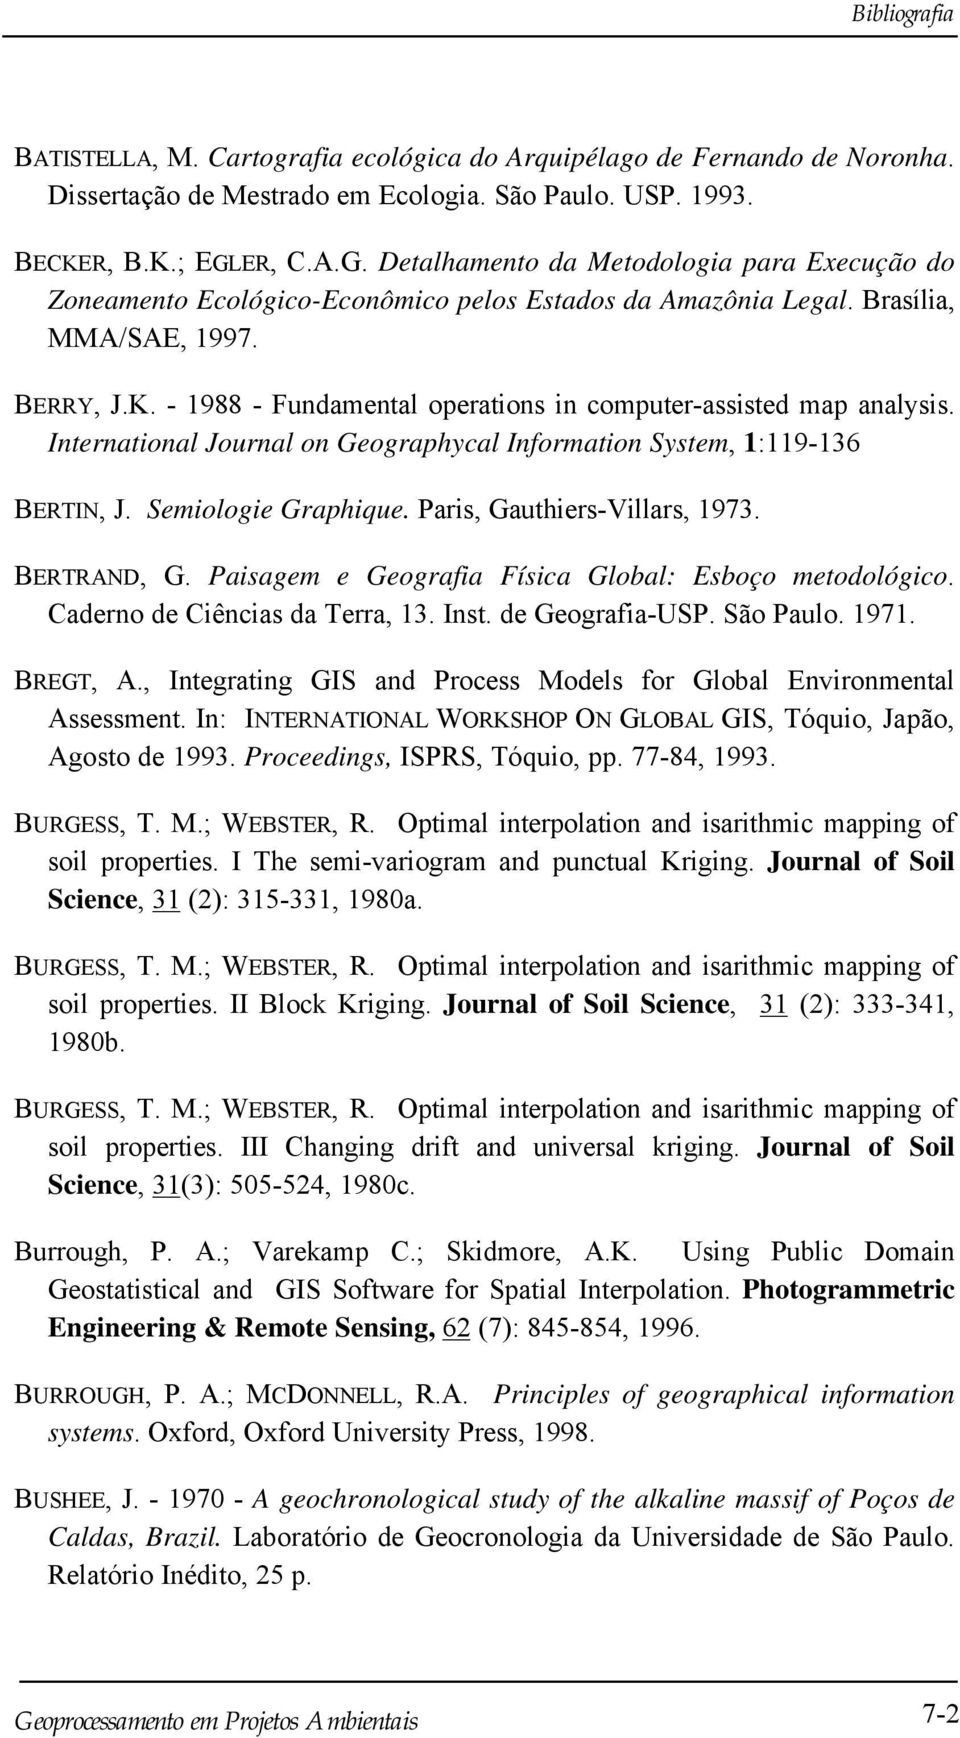 - 1988 - Fundamental operations in computer-assisted map analysis. International Journal on Geographycal Information System, 1:119-136 BERTIN, J. Semiologie Graphique. Paris, Gauthiers-Villars, 1973.